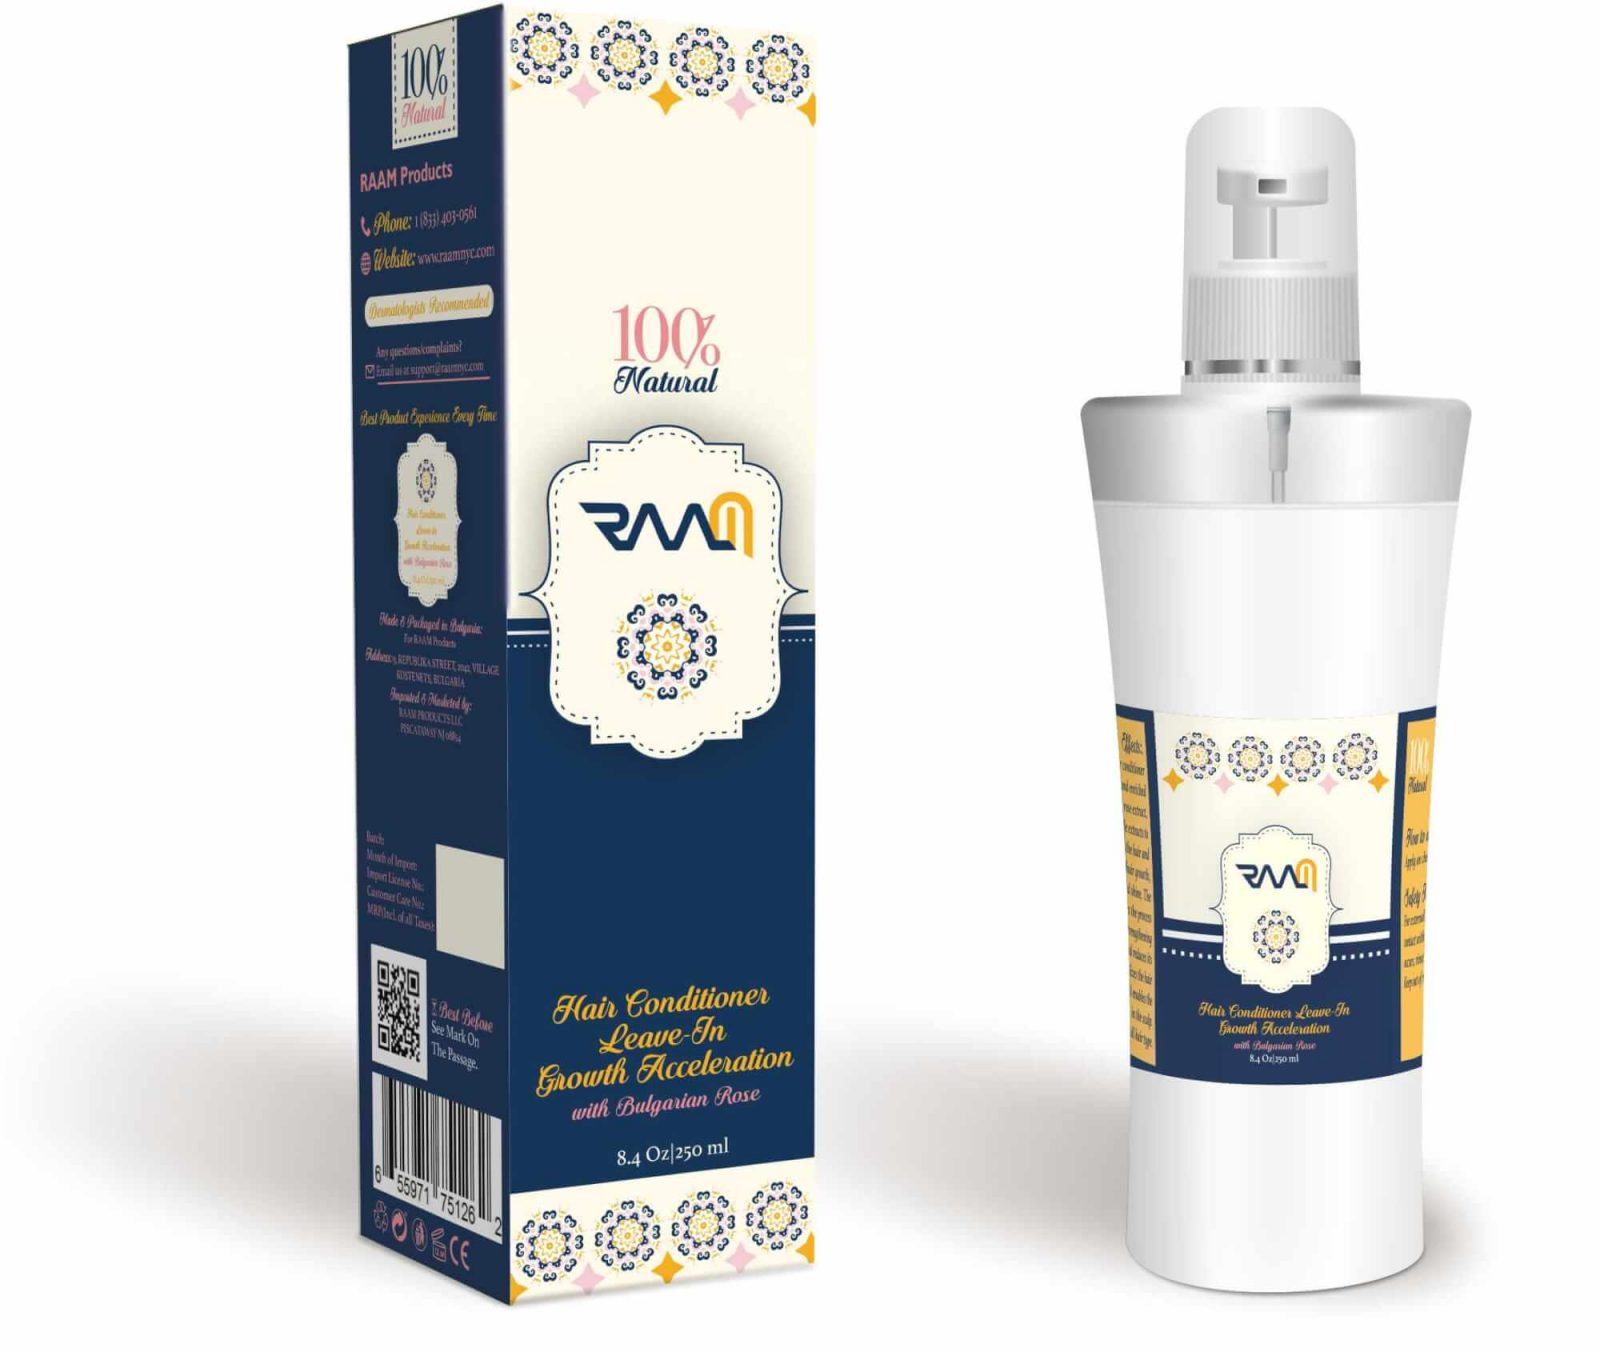 06-Raam Hair Conditioner Leave-in Growth Acceleration Bottle mockup 2